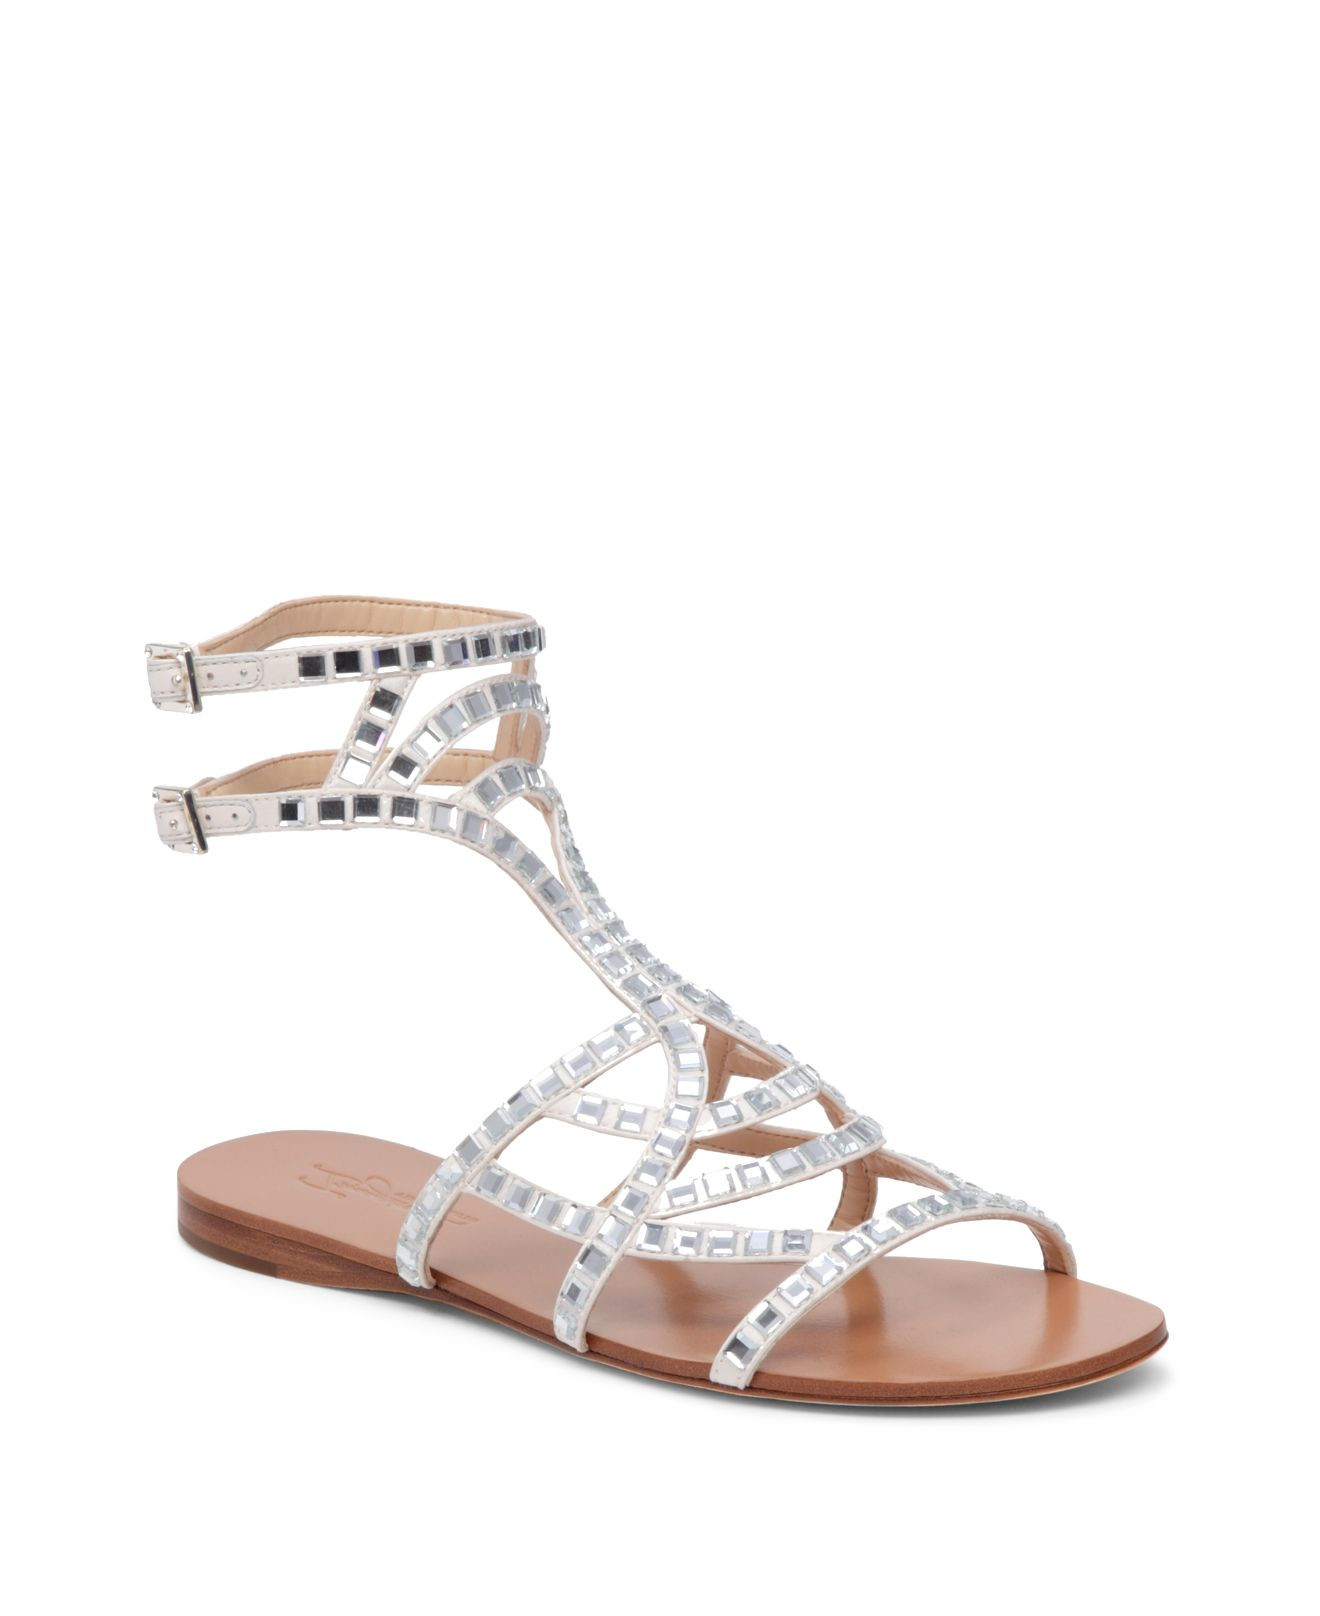 Imagine By Vince Camuto Women S Shoes